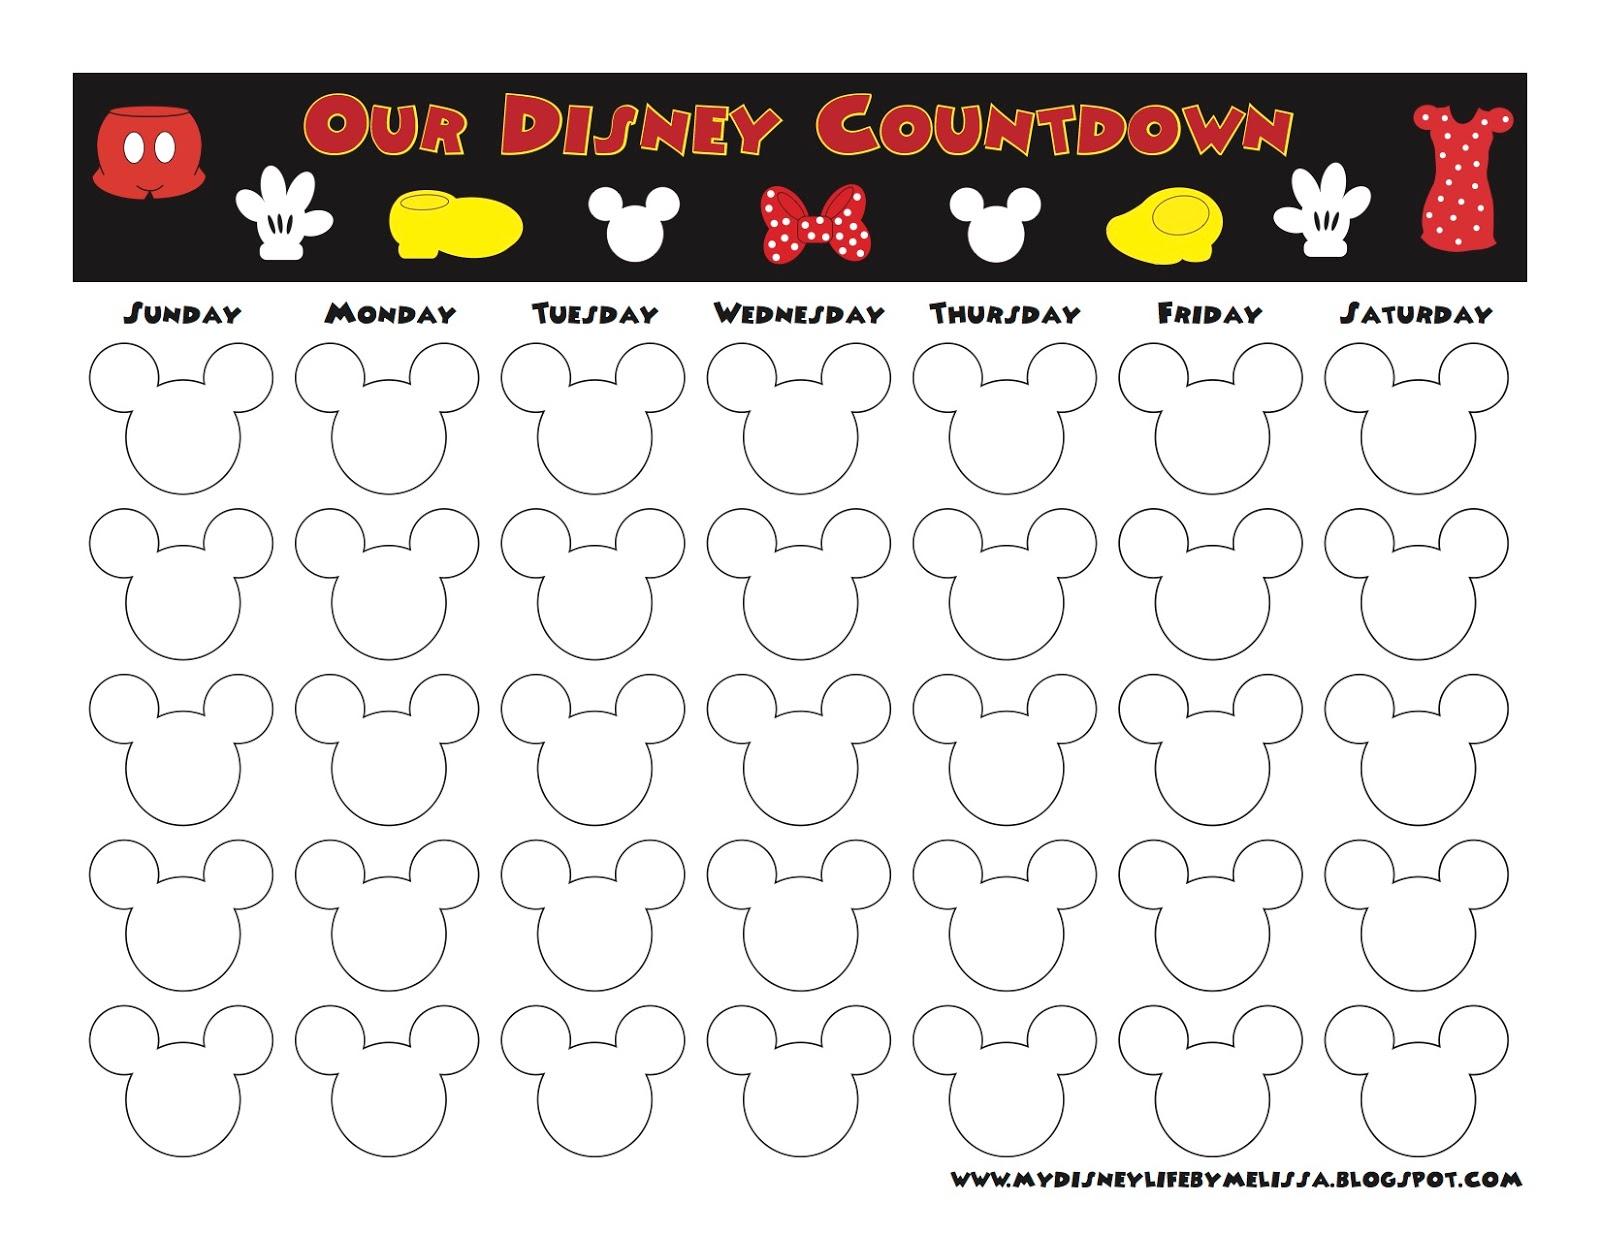 image regarding Disney Countdown Calendar Printable called My Disney Daily life: Countdown Calendars